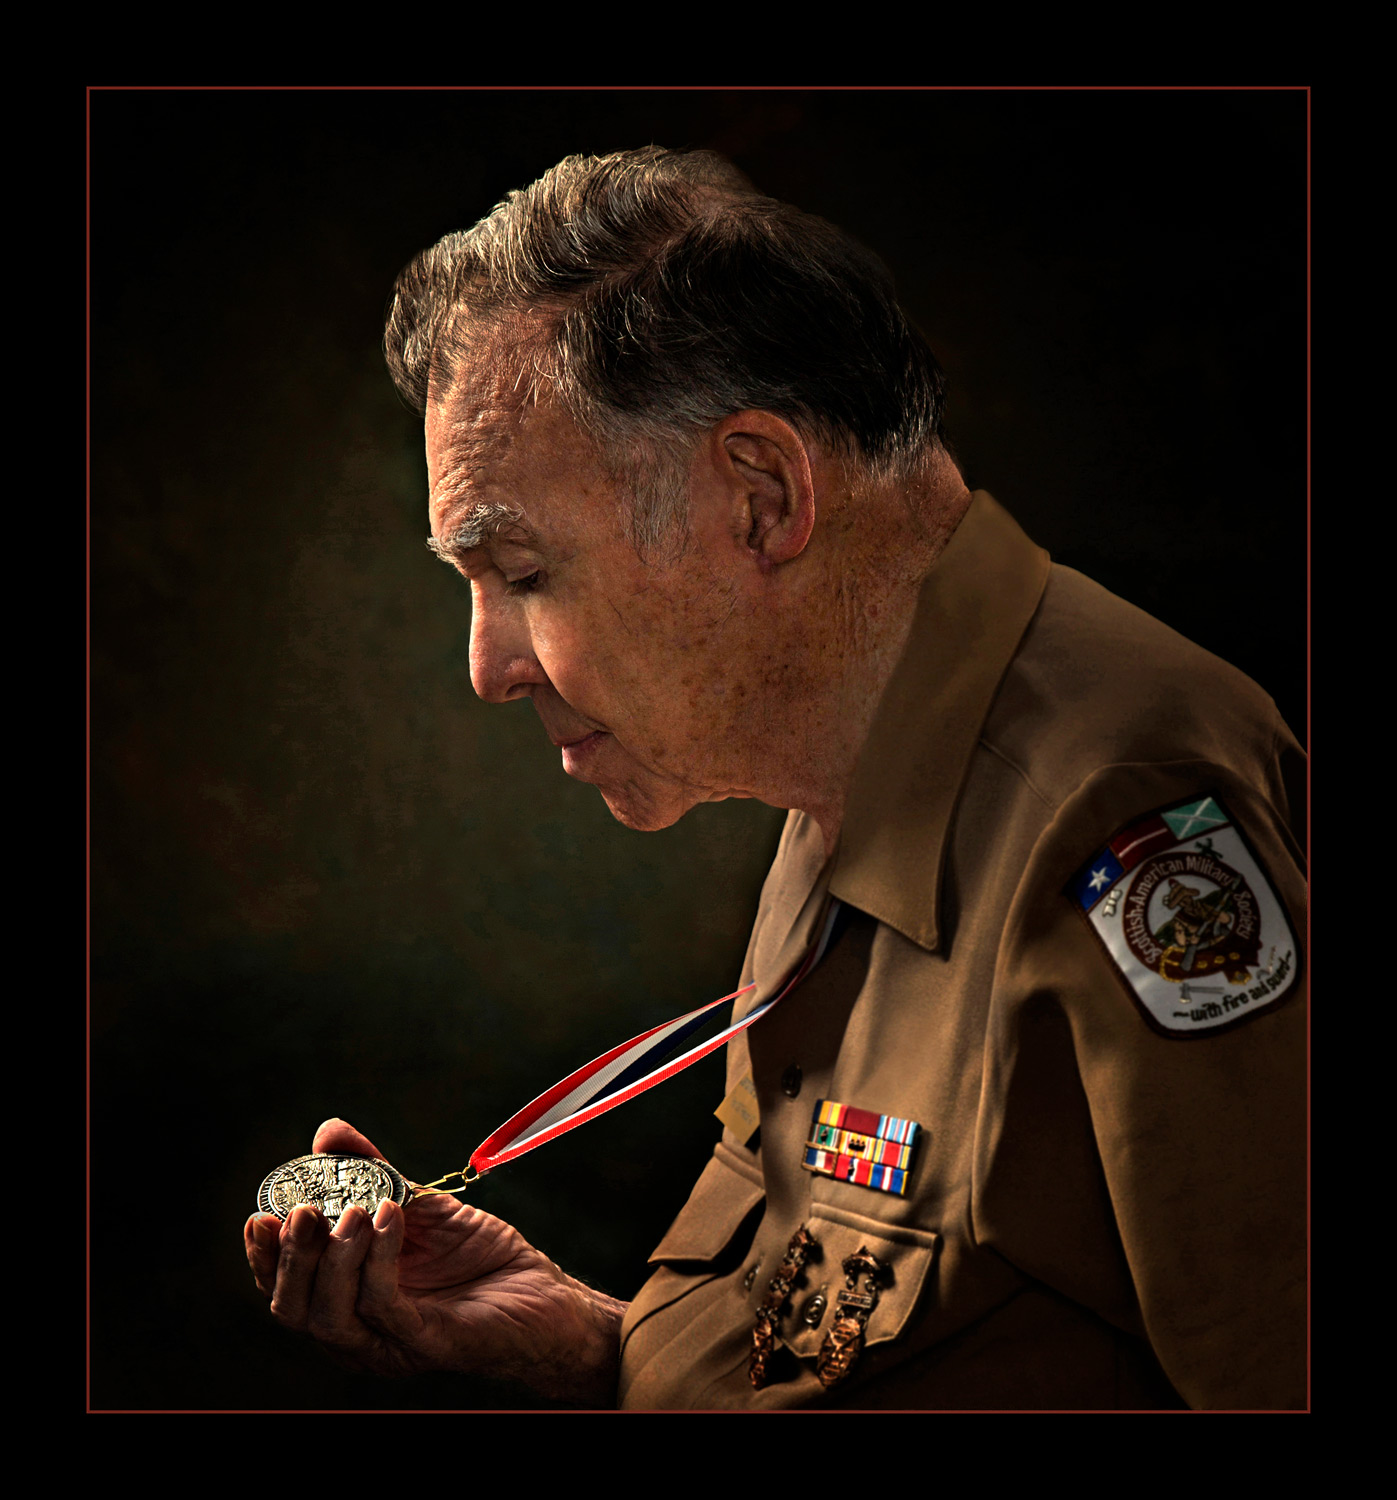 Veteran Jerry Welna, who fought during World War II